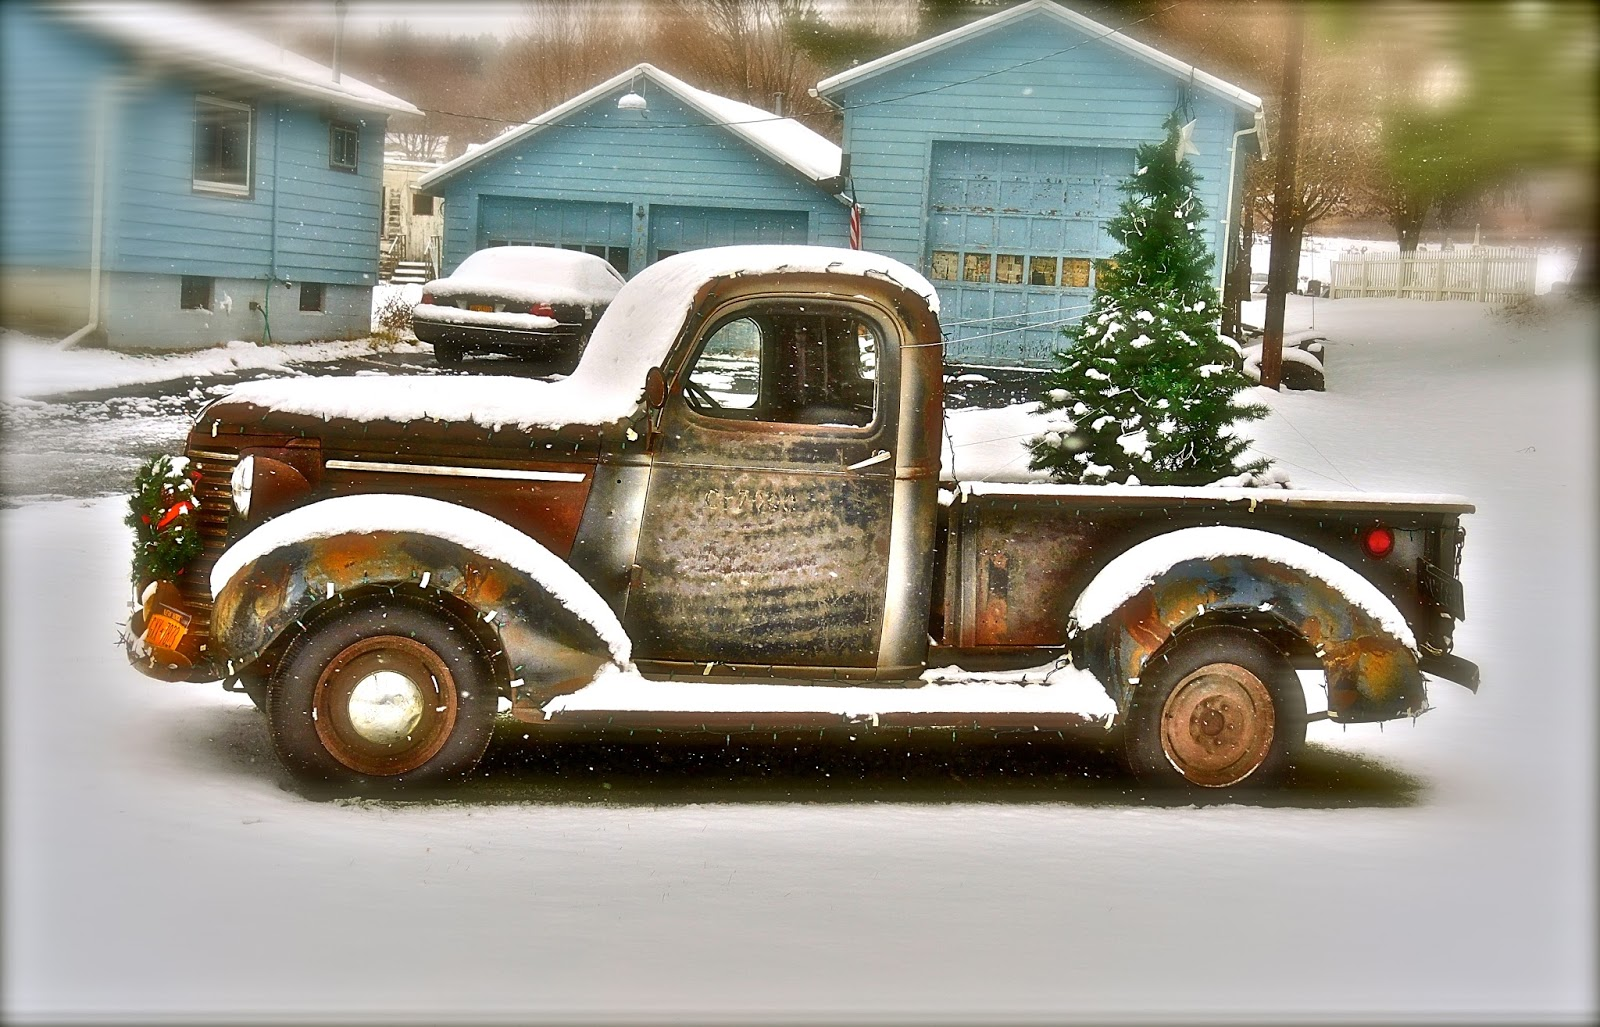 This 39 Chevy And I Wish You A Merry Christmas Happy Hanukkah Tom